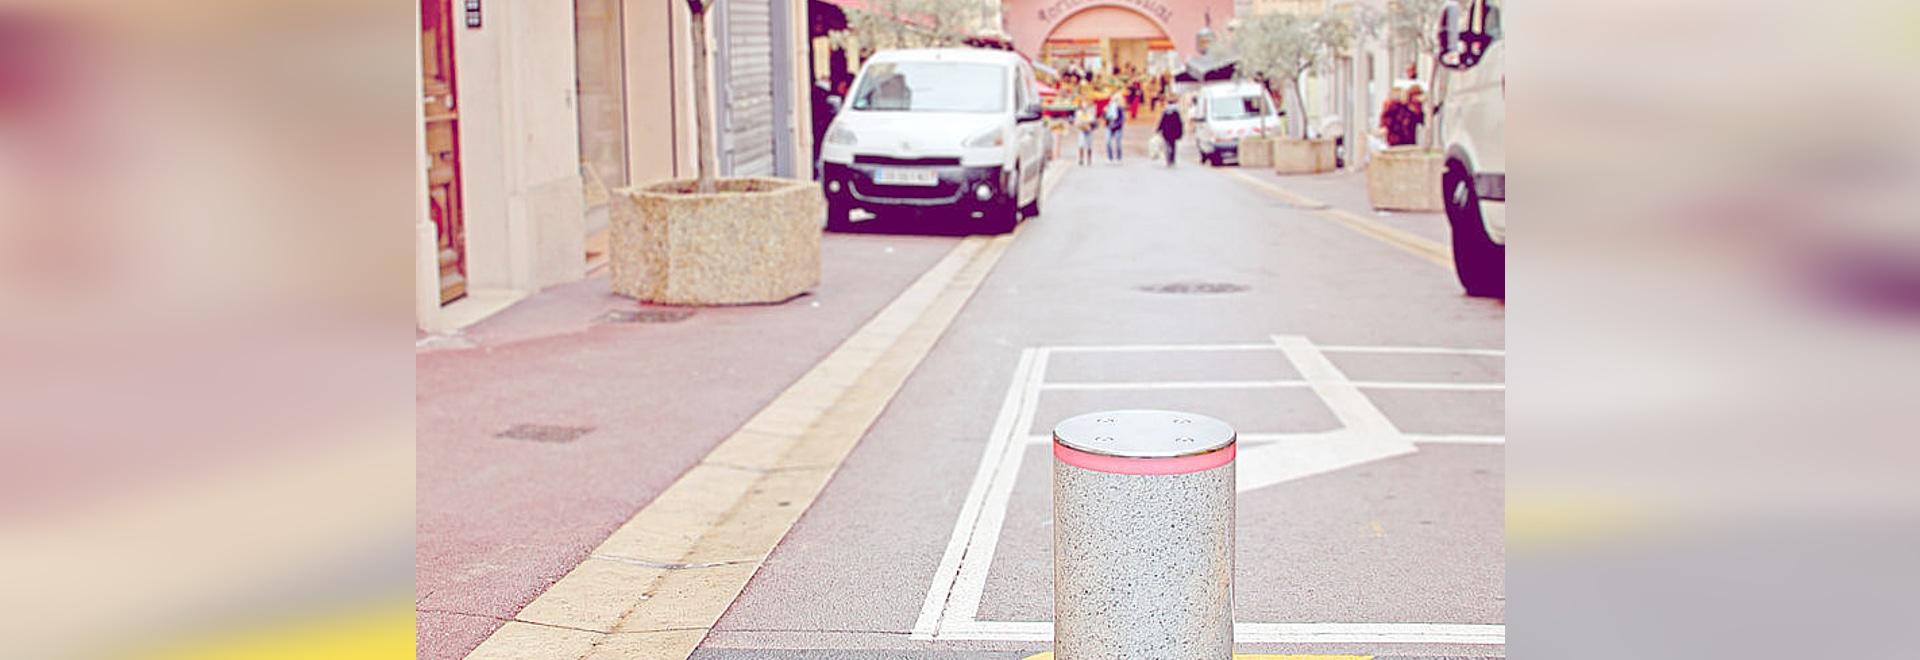 G6 EVO retractable bollard with built-in hydraulic pump - Legendary robustness and customizable design